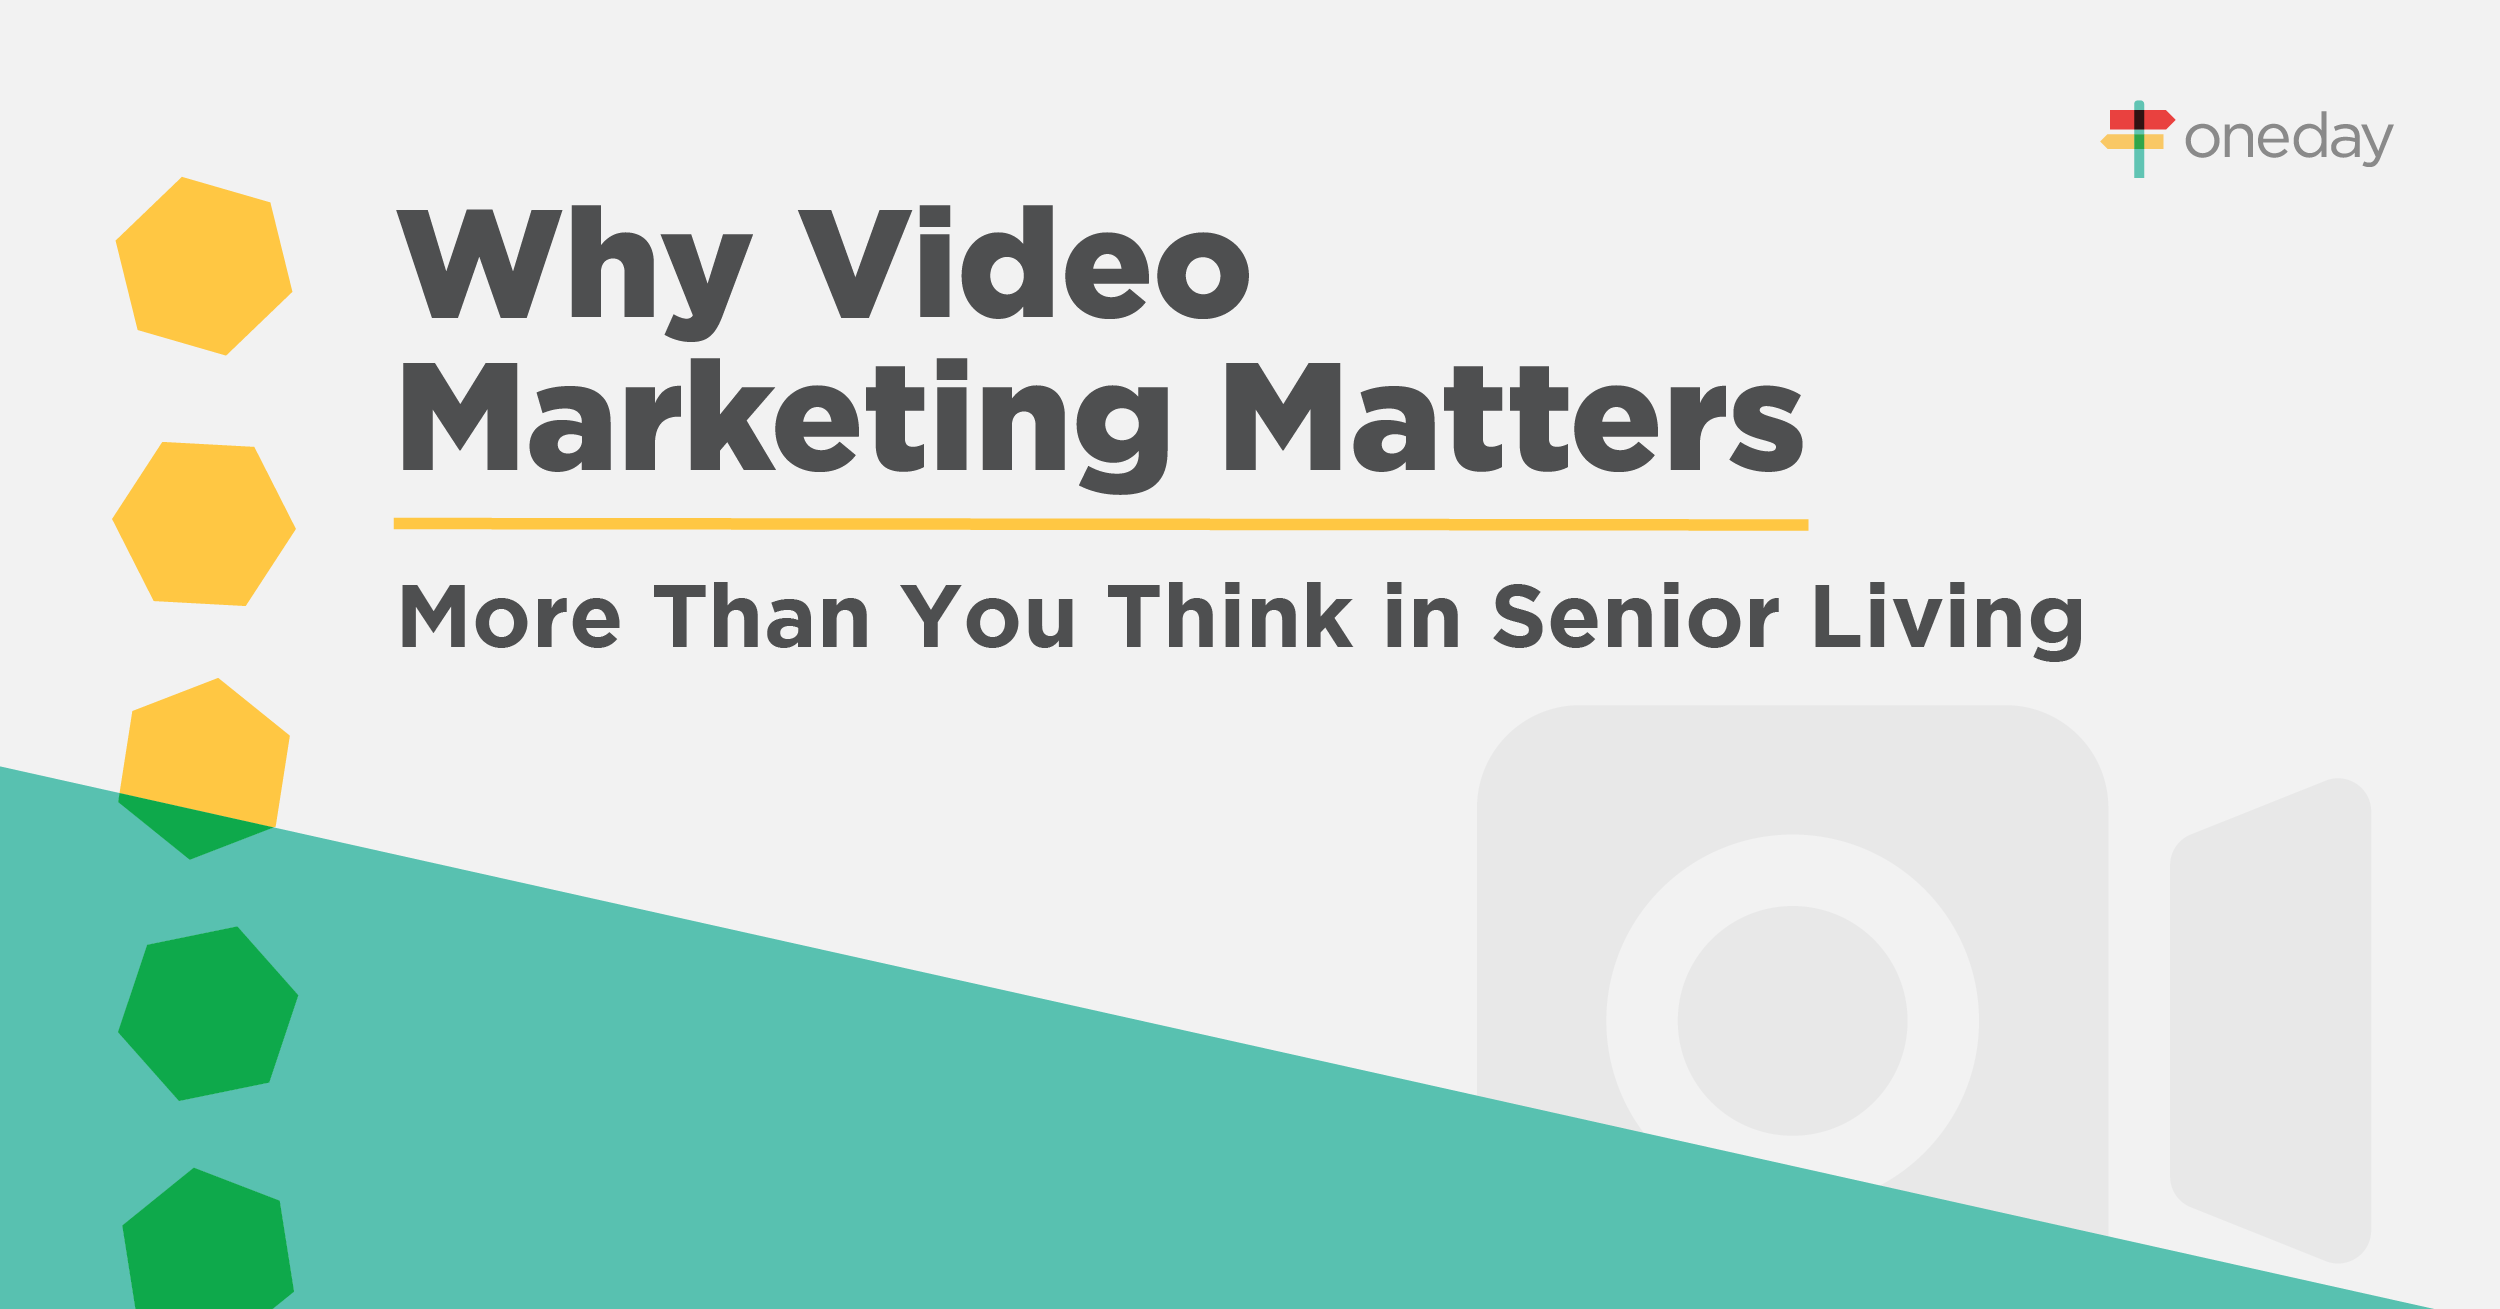 Why Video Marketing Matters More Than You Think in Senior Living